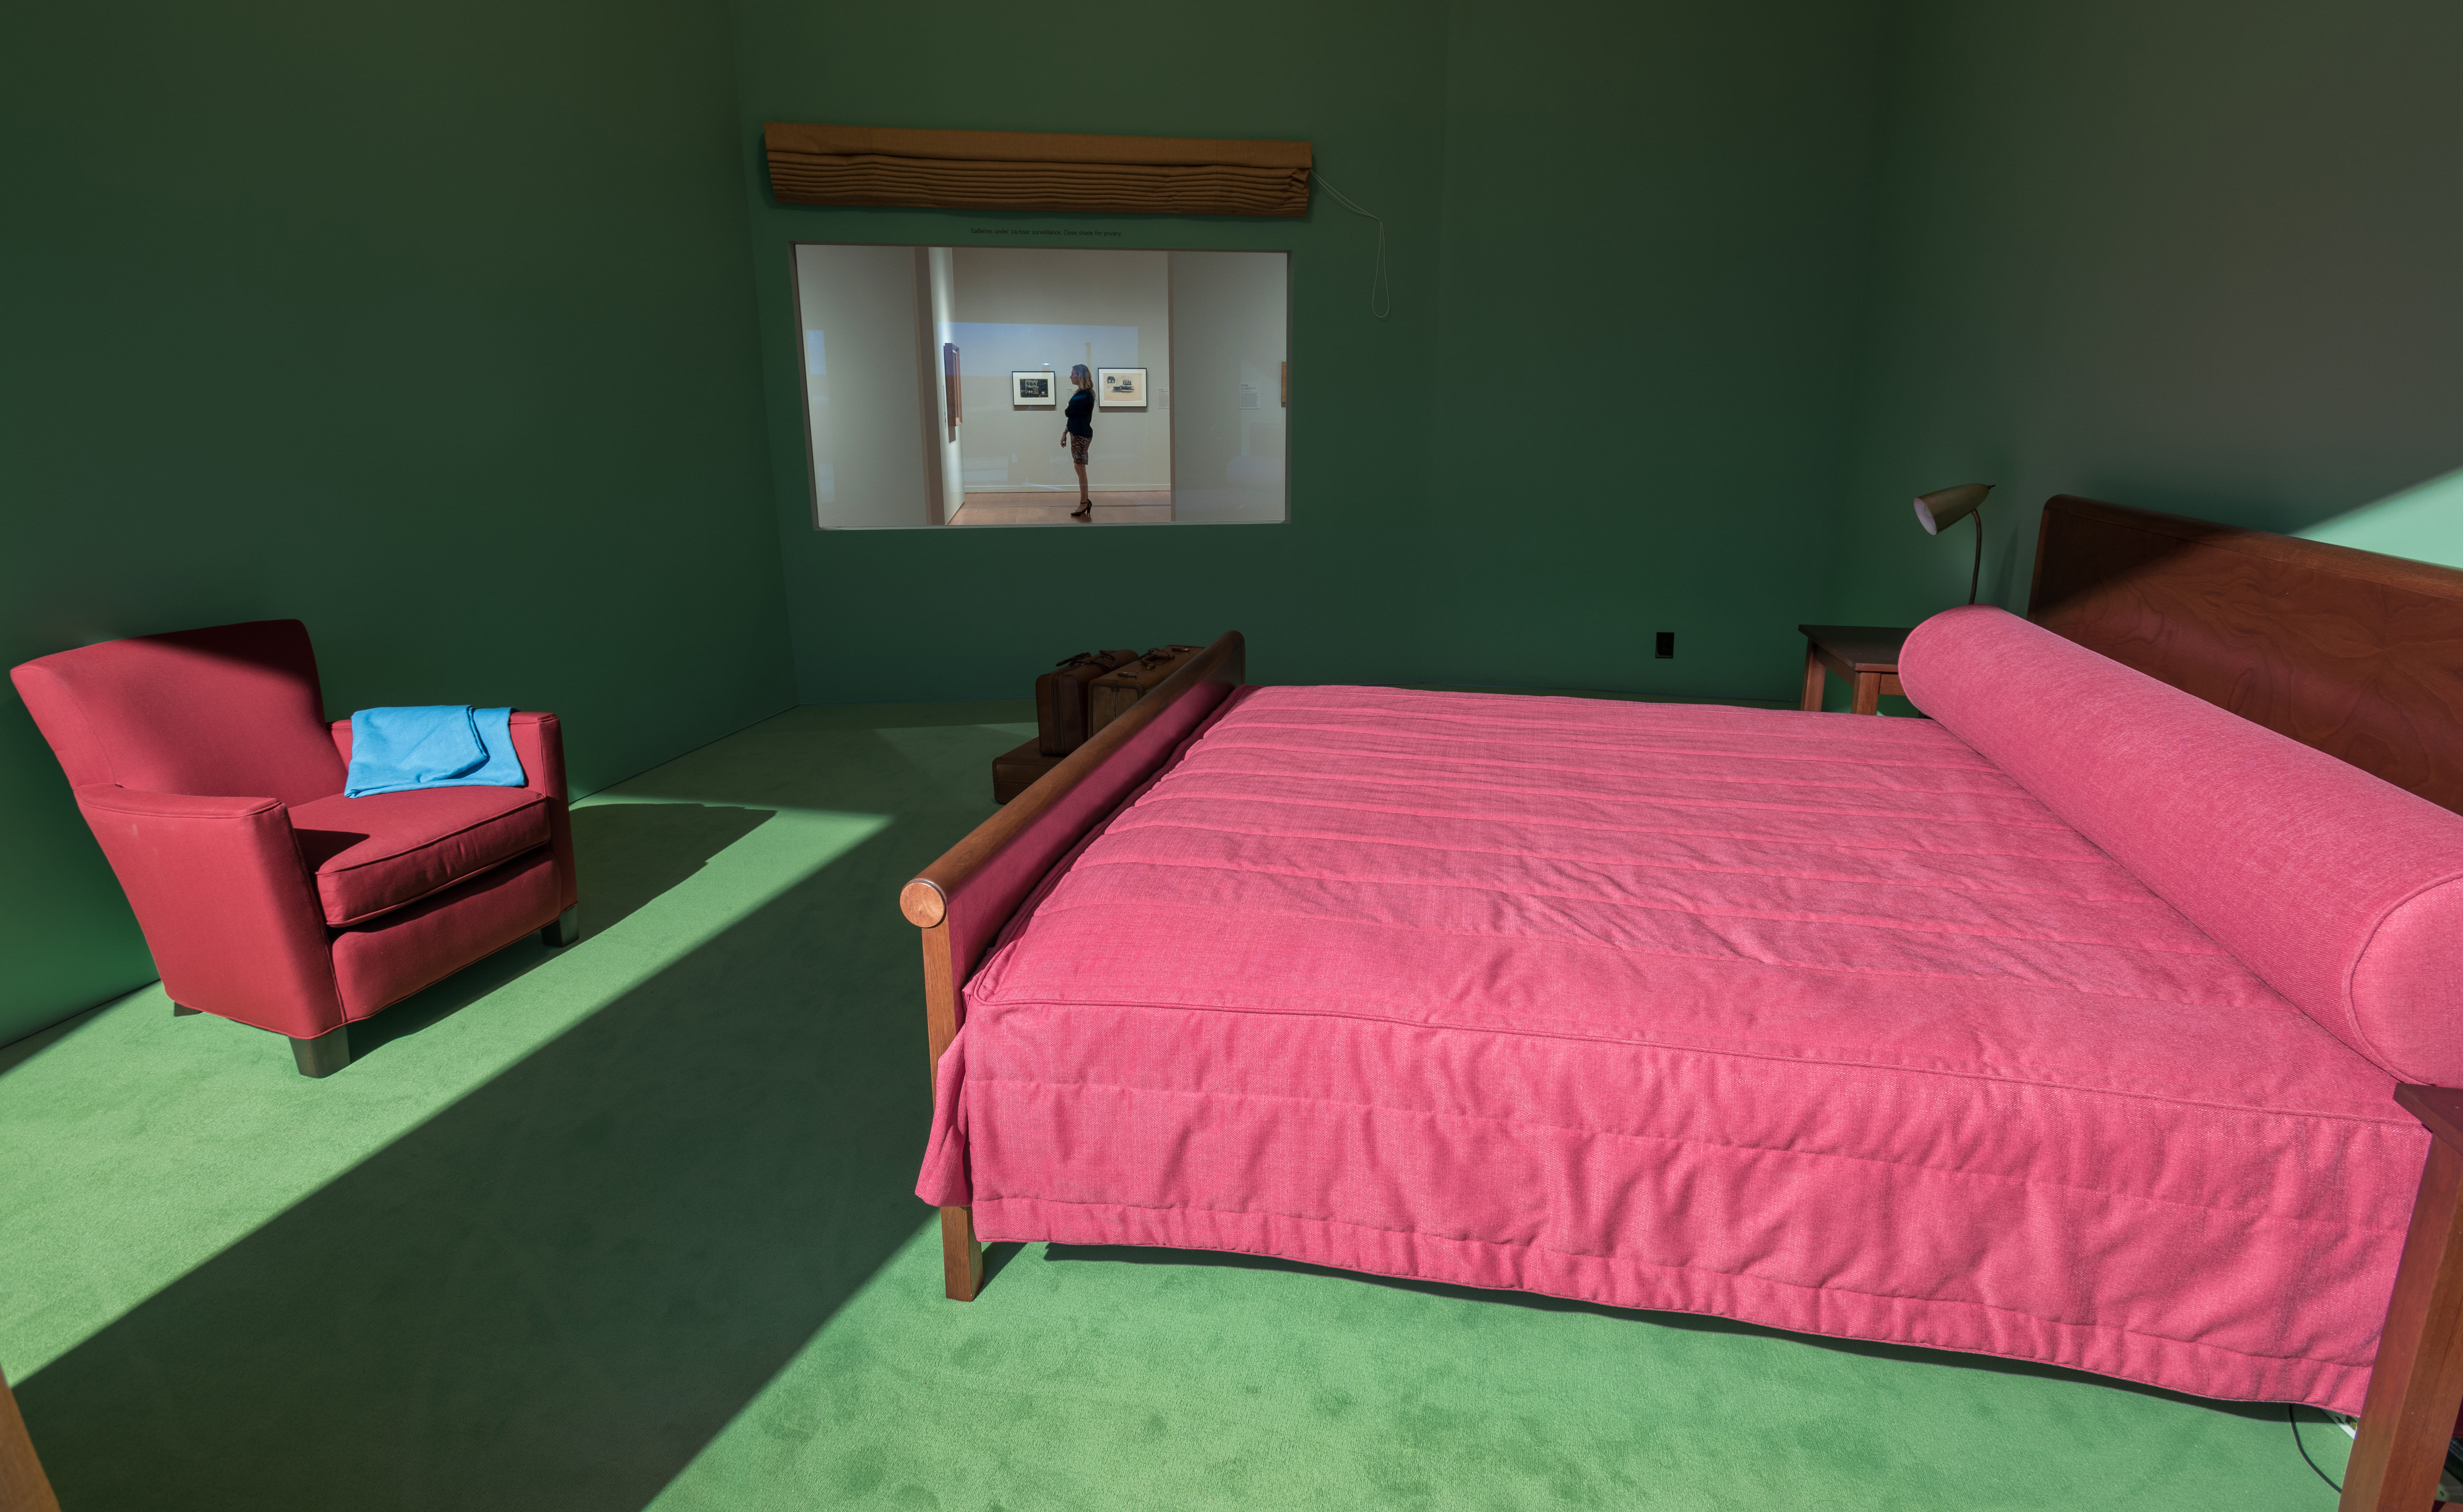 Edward Hopper's Western Motel Recreated in an Exhibition – Fubiz Media Design